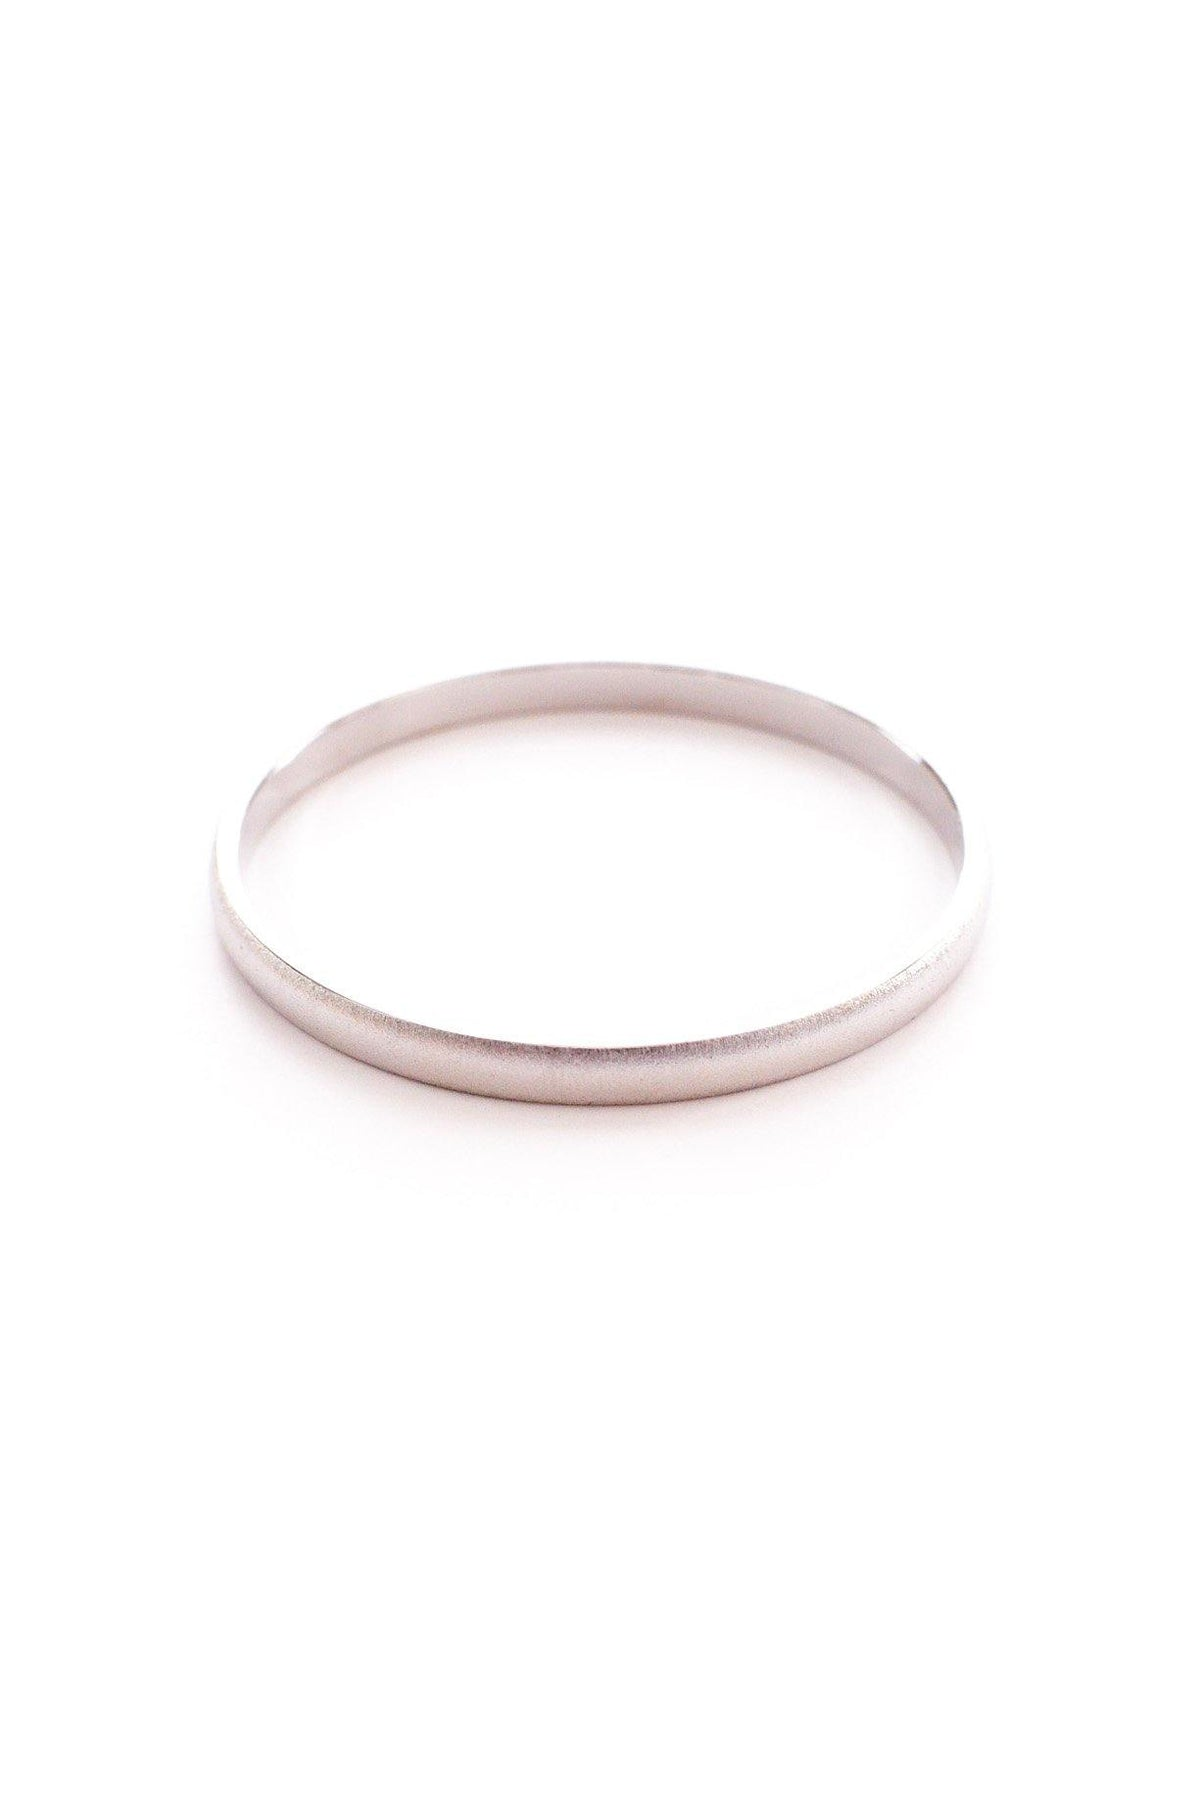 Skinny etched silver bangle bracelet from Sweet & Spark.